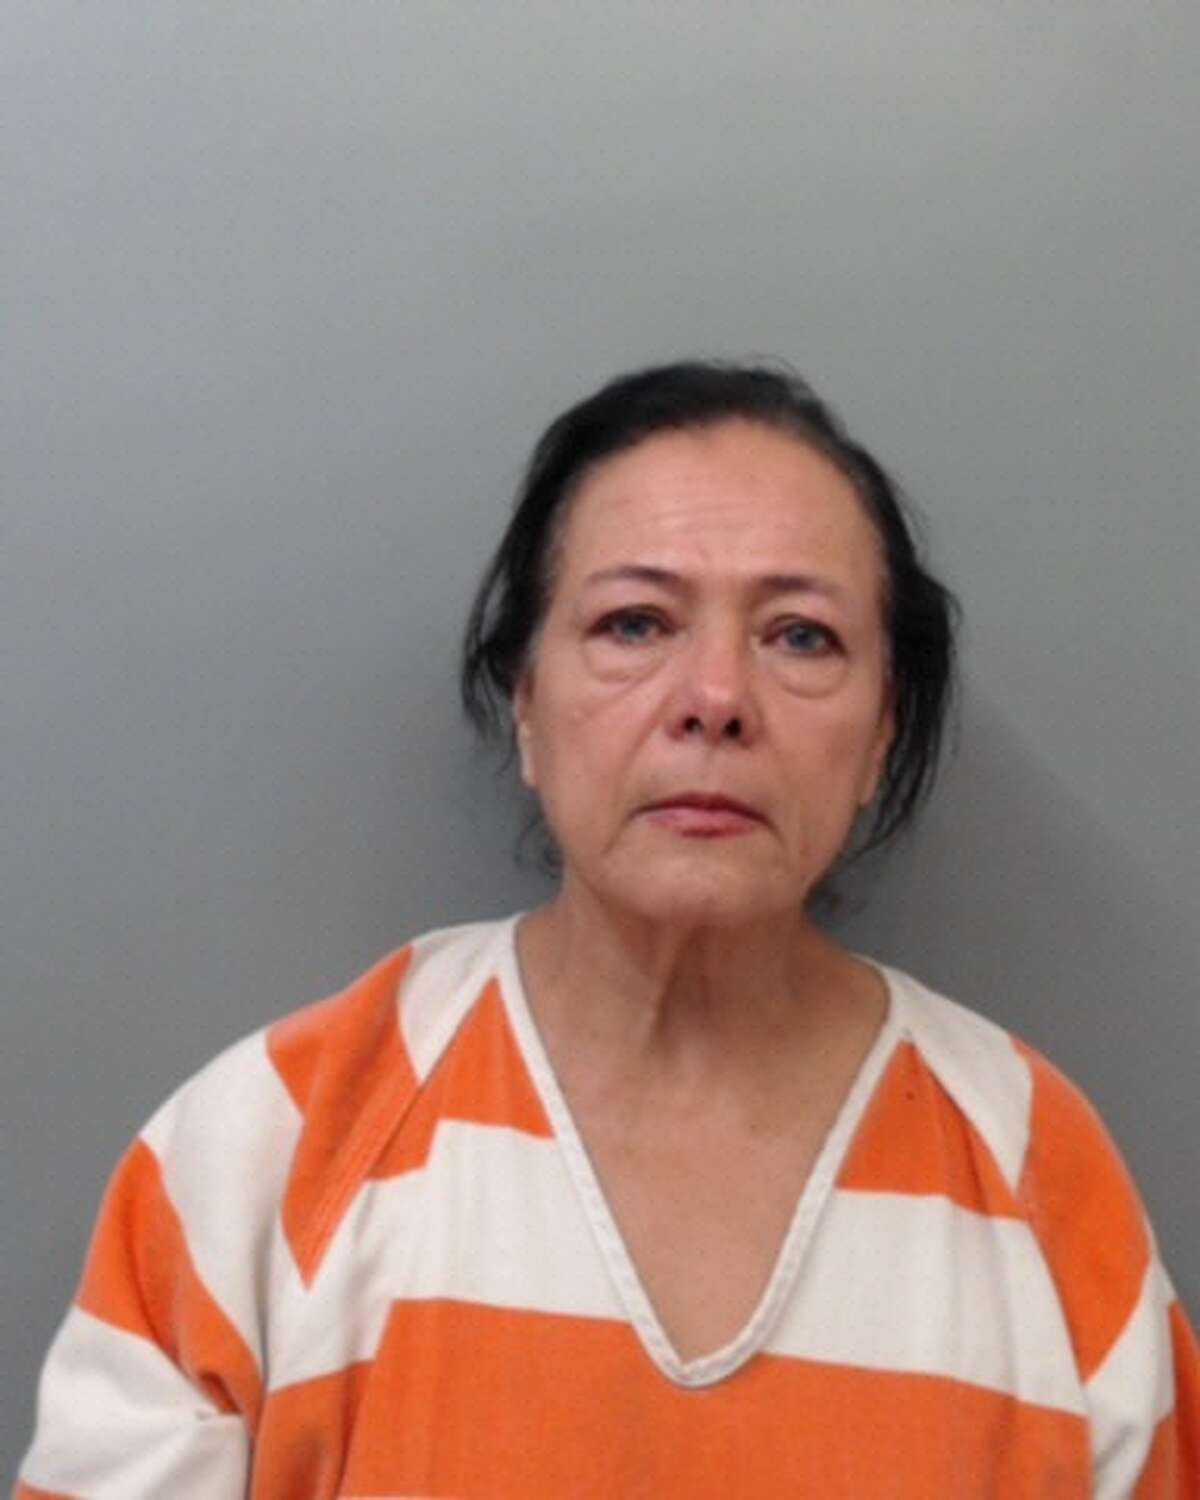 Magdalena Mulgado Zepulveda, 73,was charged with 12 counts of forgery and one count of fraudulent use, possession of identifying information.